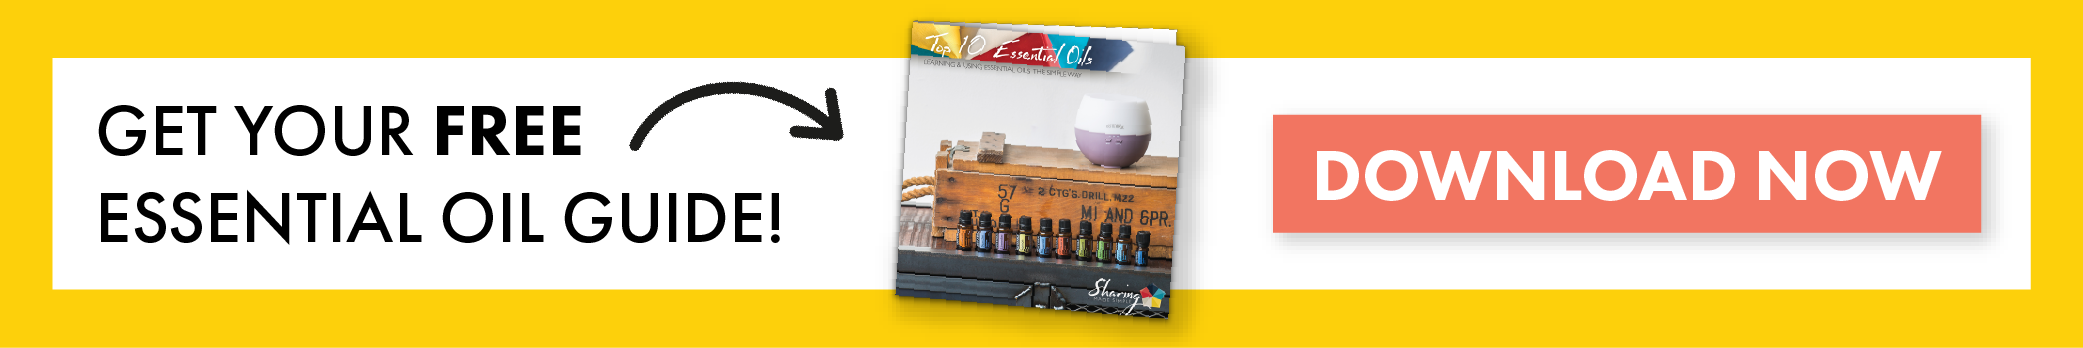 Get Your Free Top 10 doTERRA Essential Oil Guide Booklet - Happy Healthy Joe - Integrative Health Coach